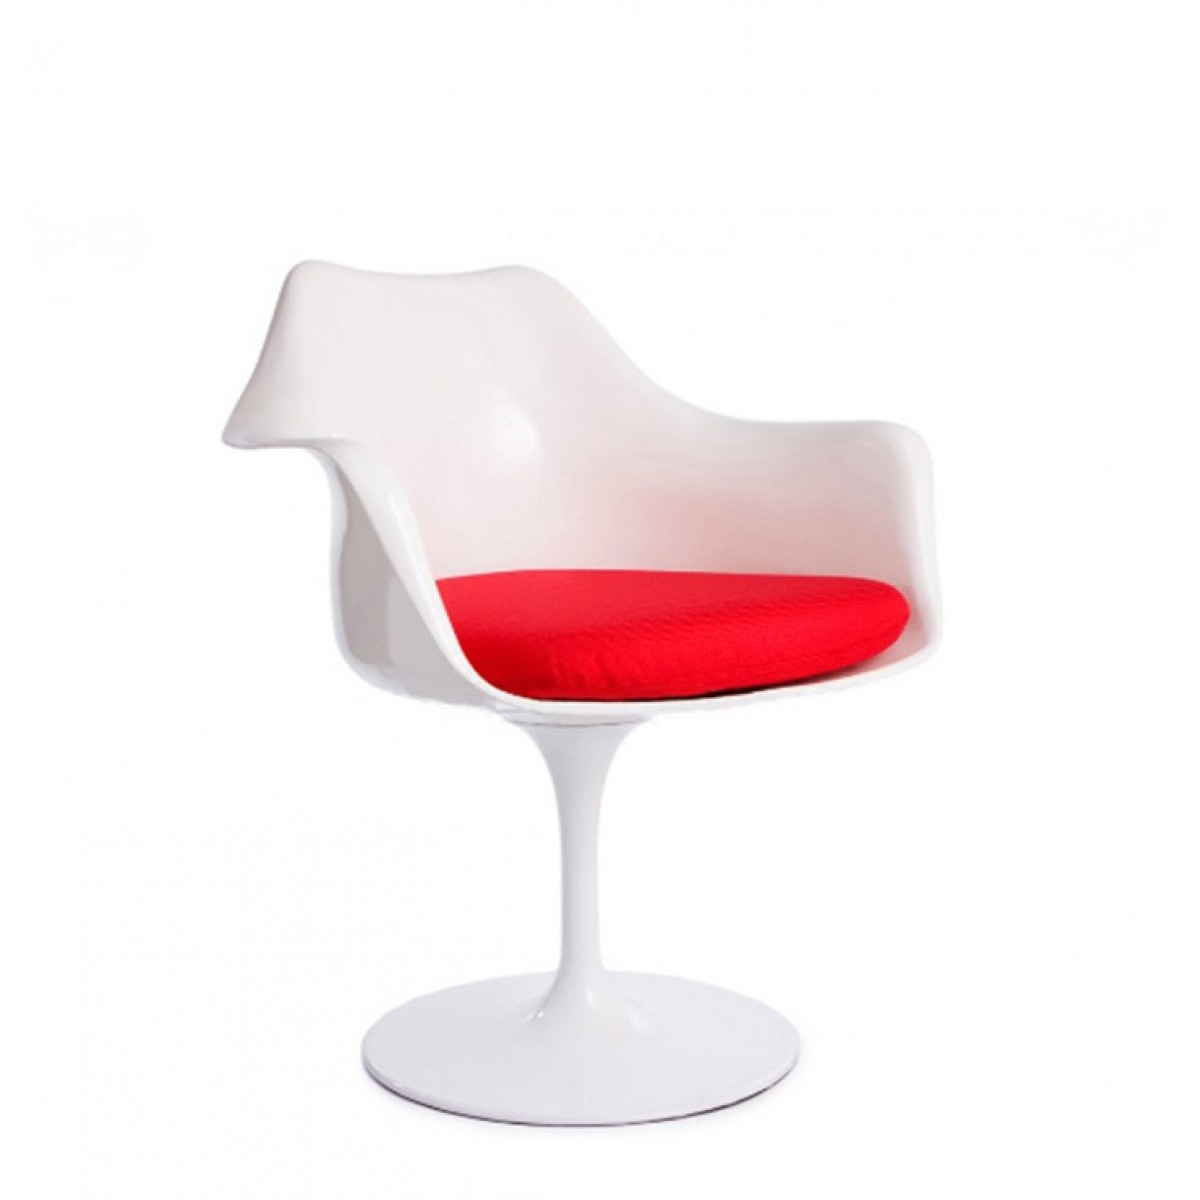 Eero Saarinen Style Tulip Arm Chair White